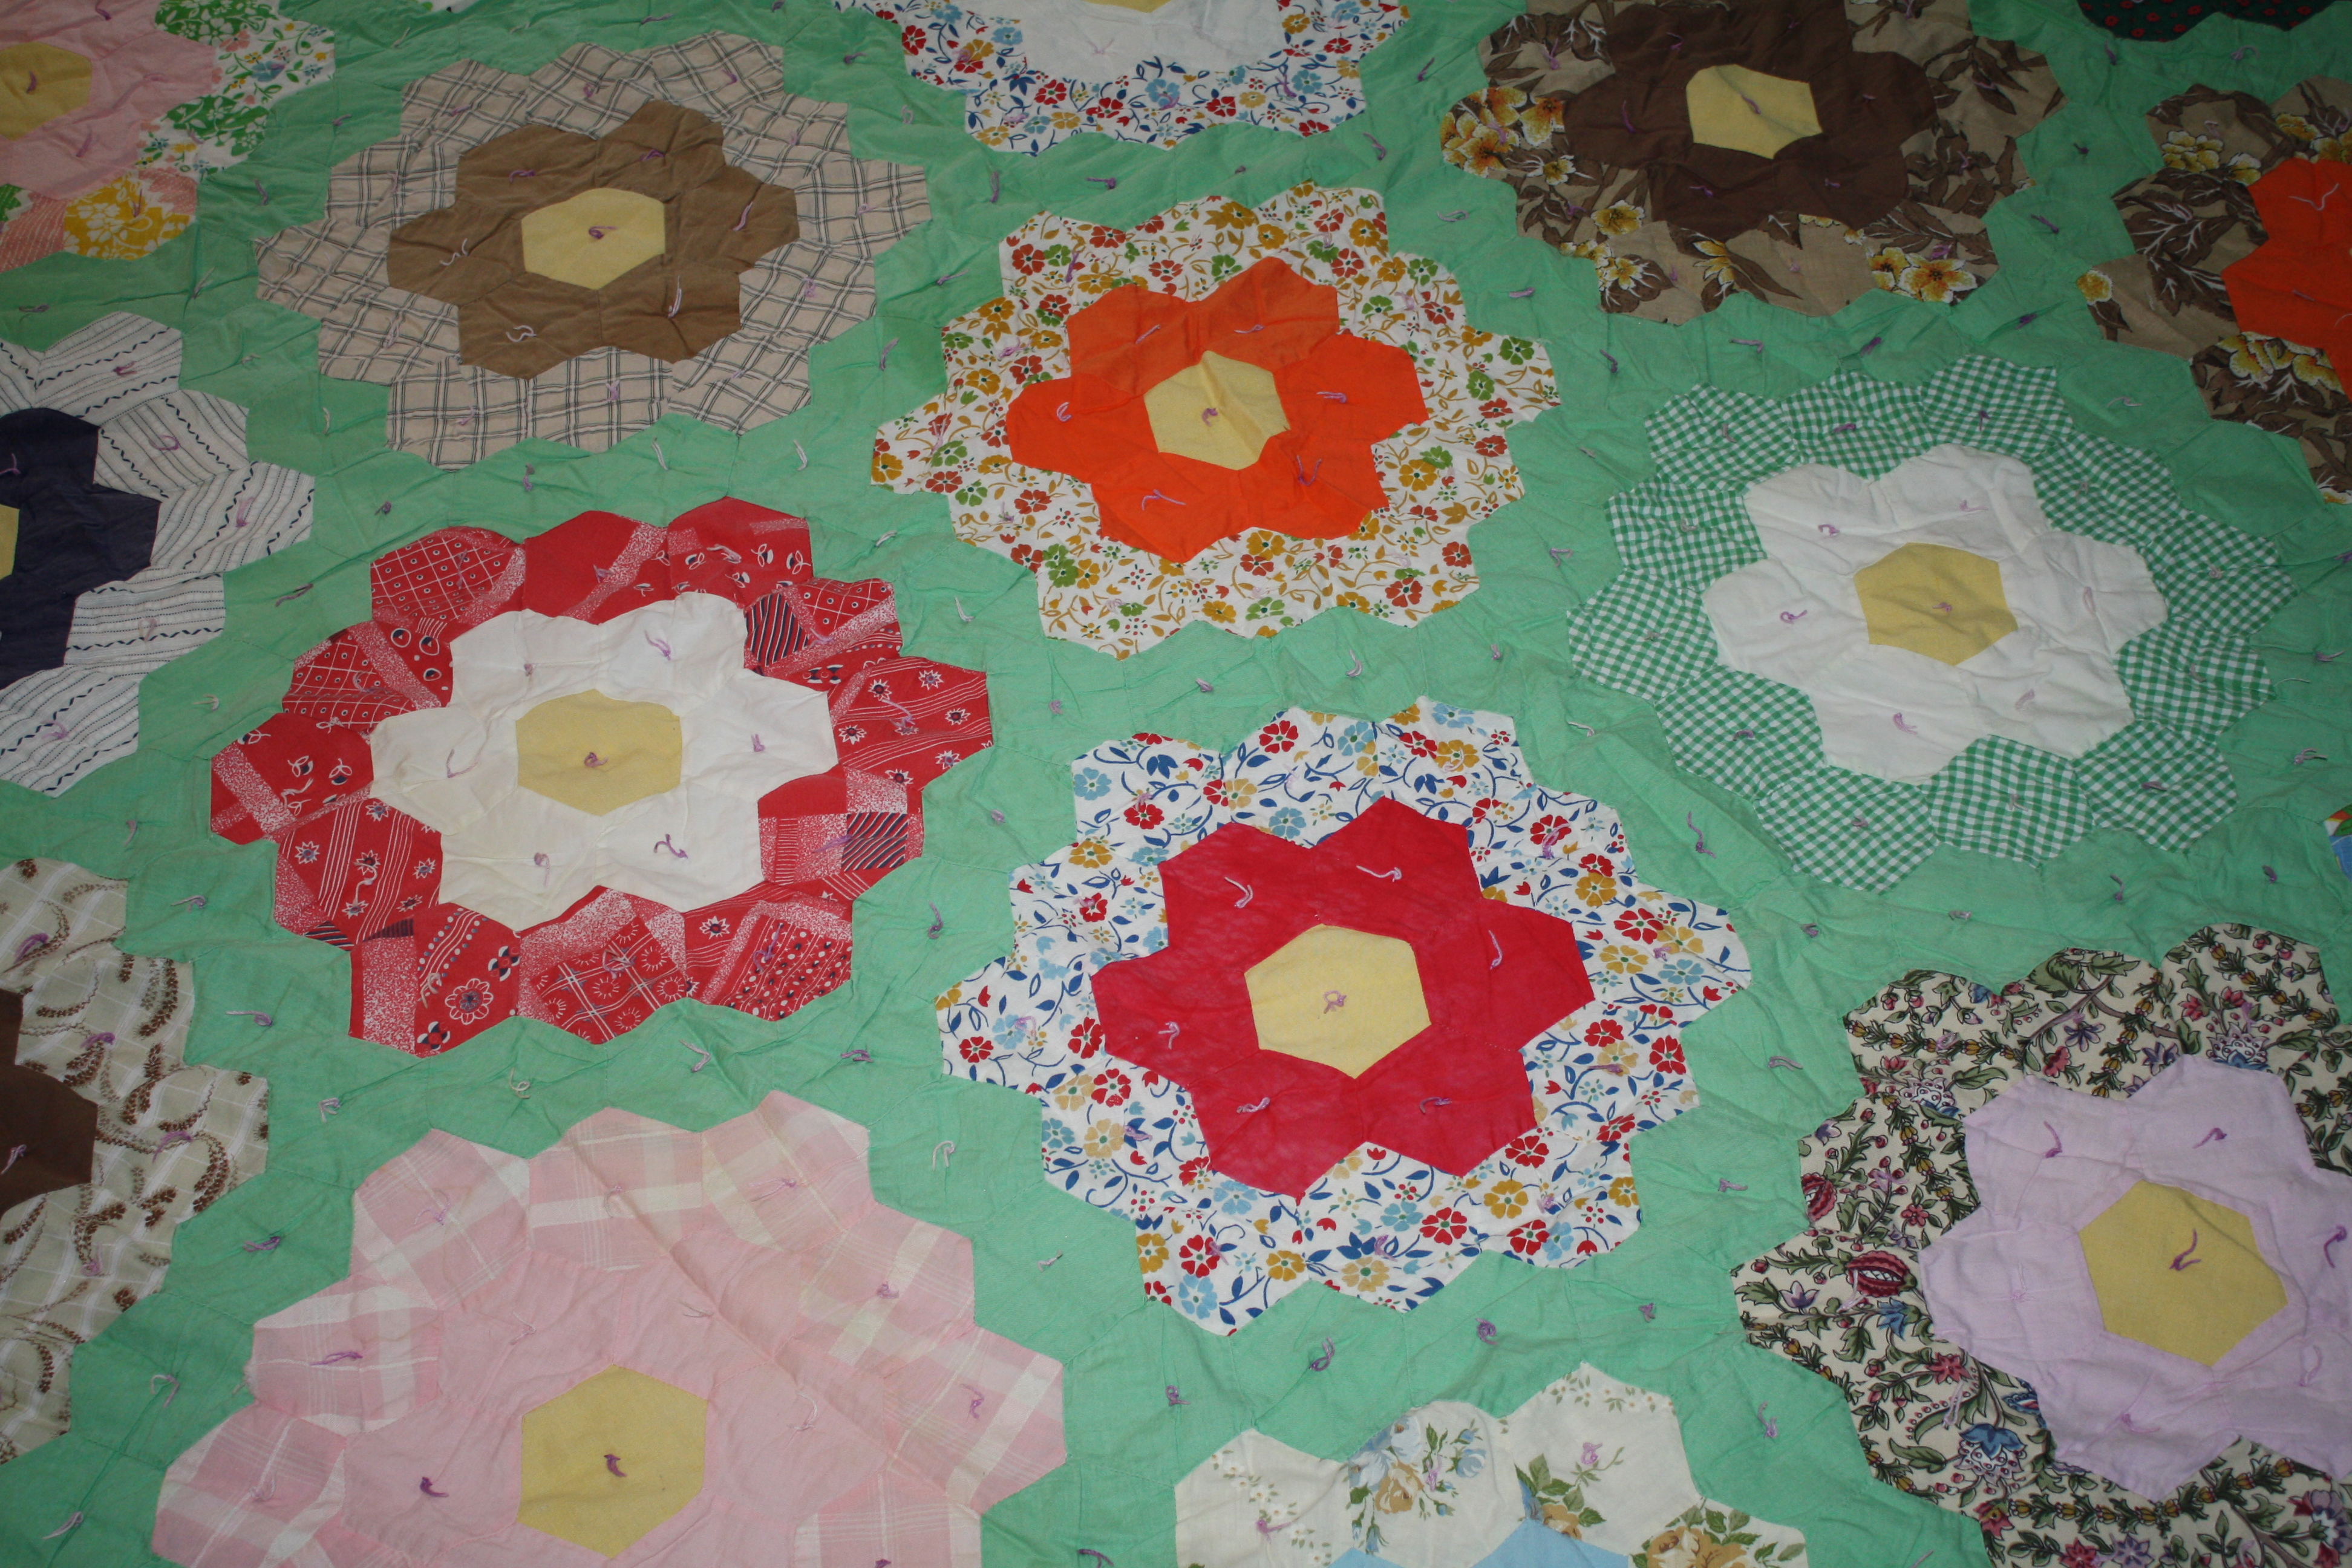 6 Appalachian Quilts: A Mother's Day Celebration | Kite Dreams : appalachian quilts - Adamdwight.com